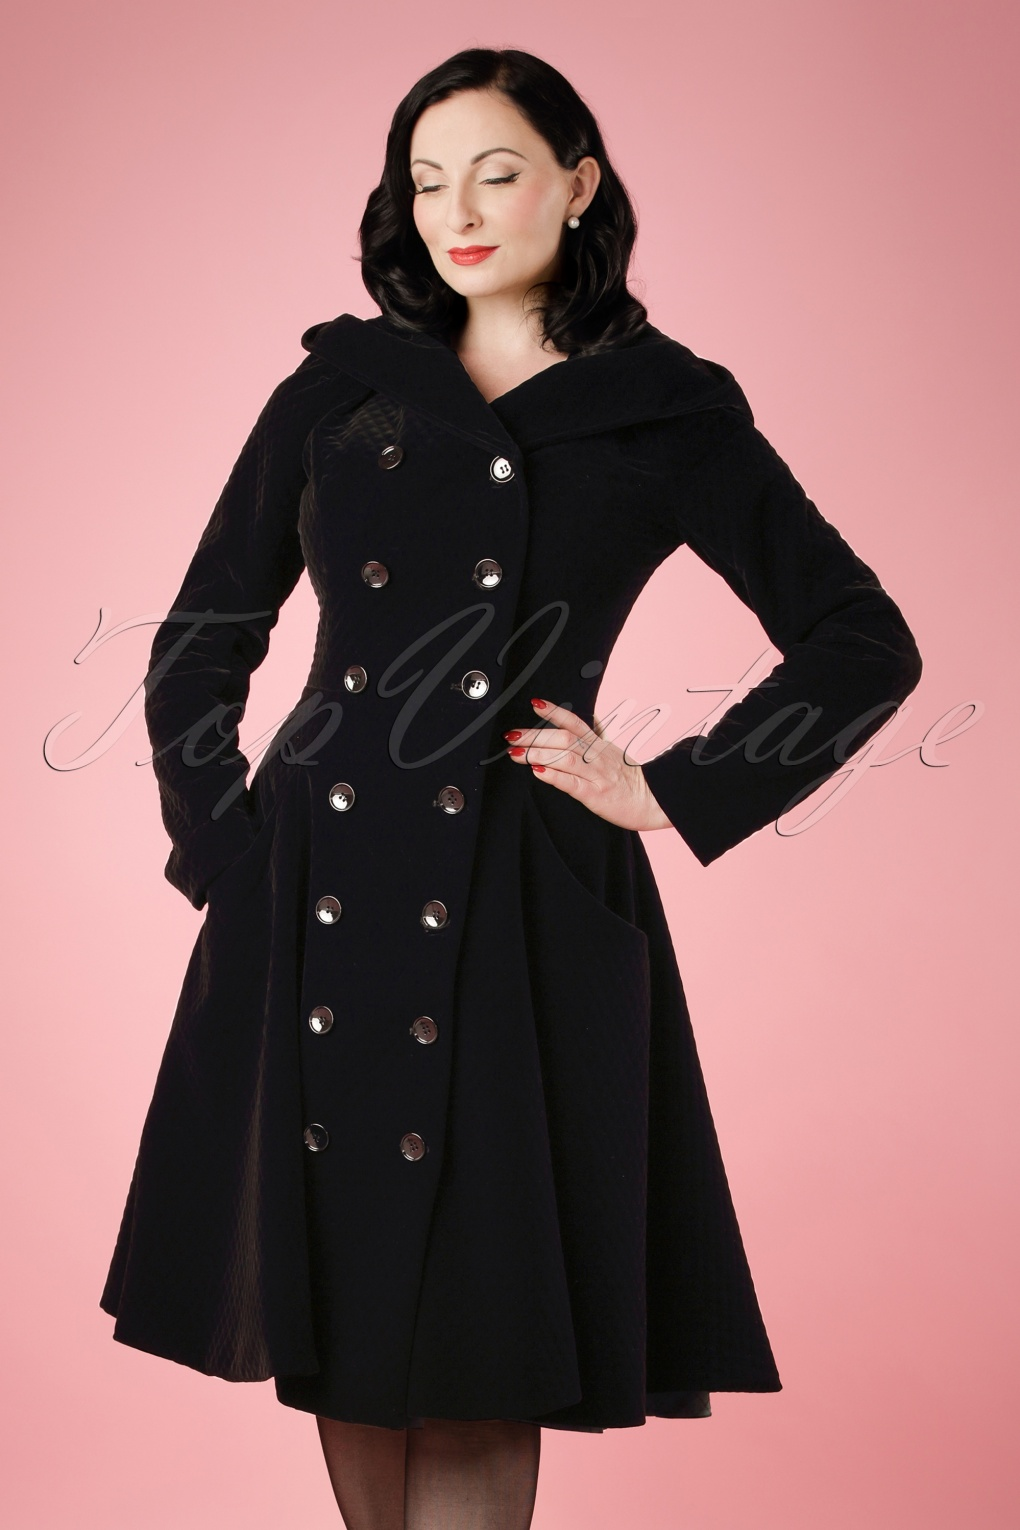 1950s Jackets, Coats, Bolero | Swing, Pin Up, Rockabilly 50s Heather Hooded Quilted Velvet Coat in Black £140.12 AT vintagedancer.com